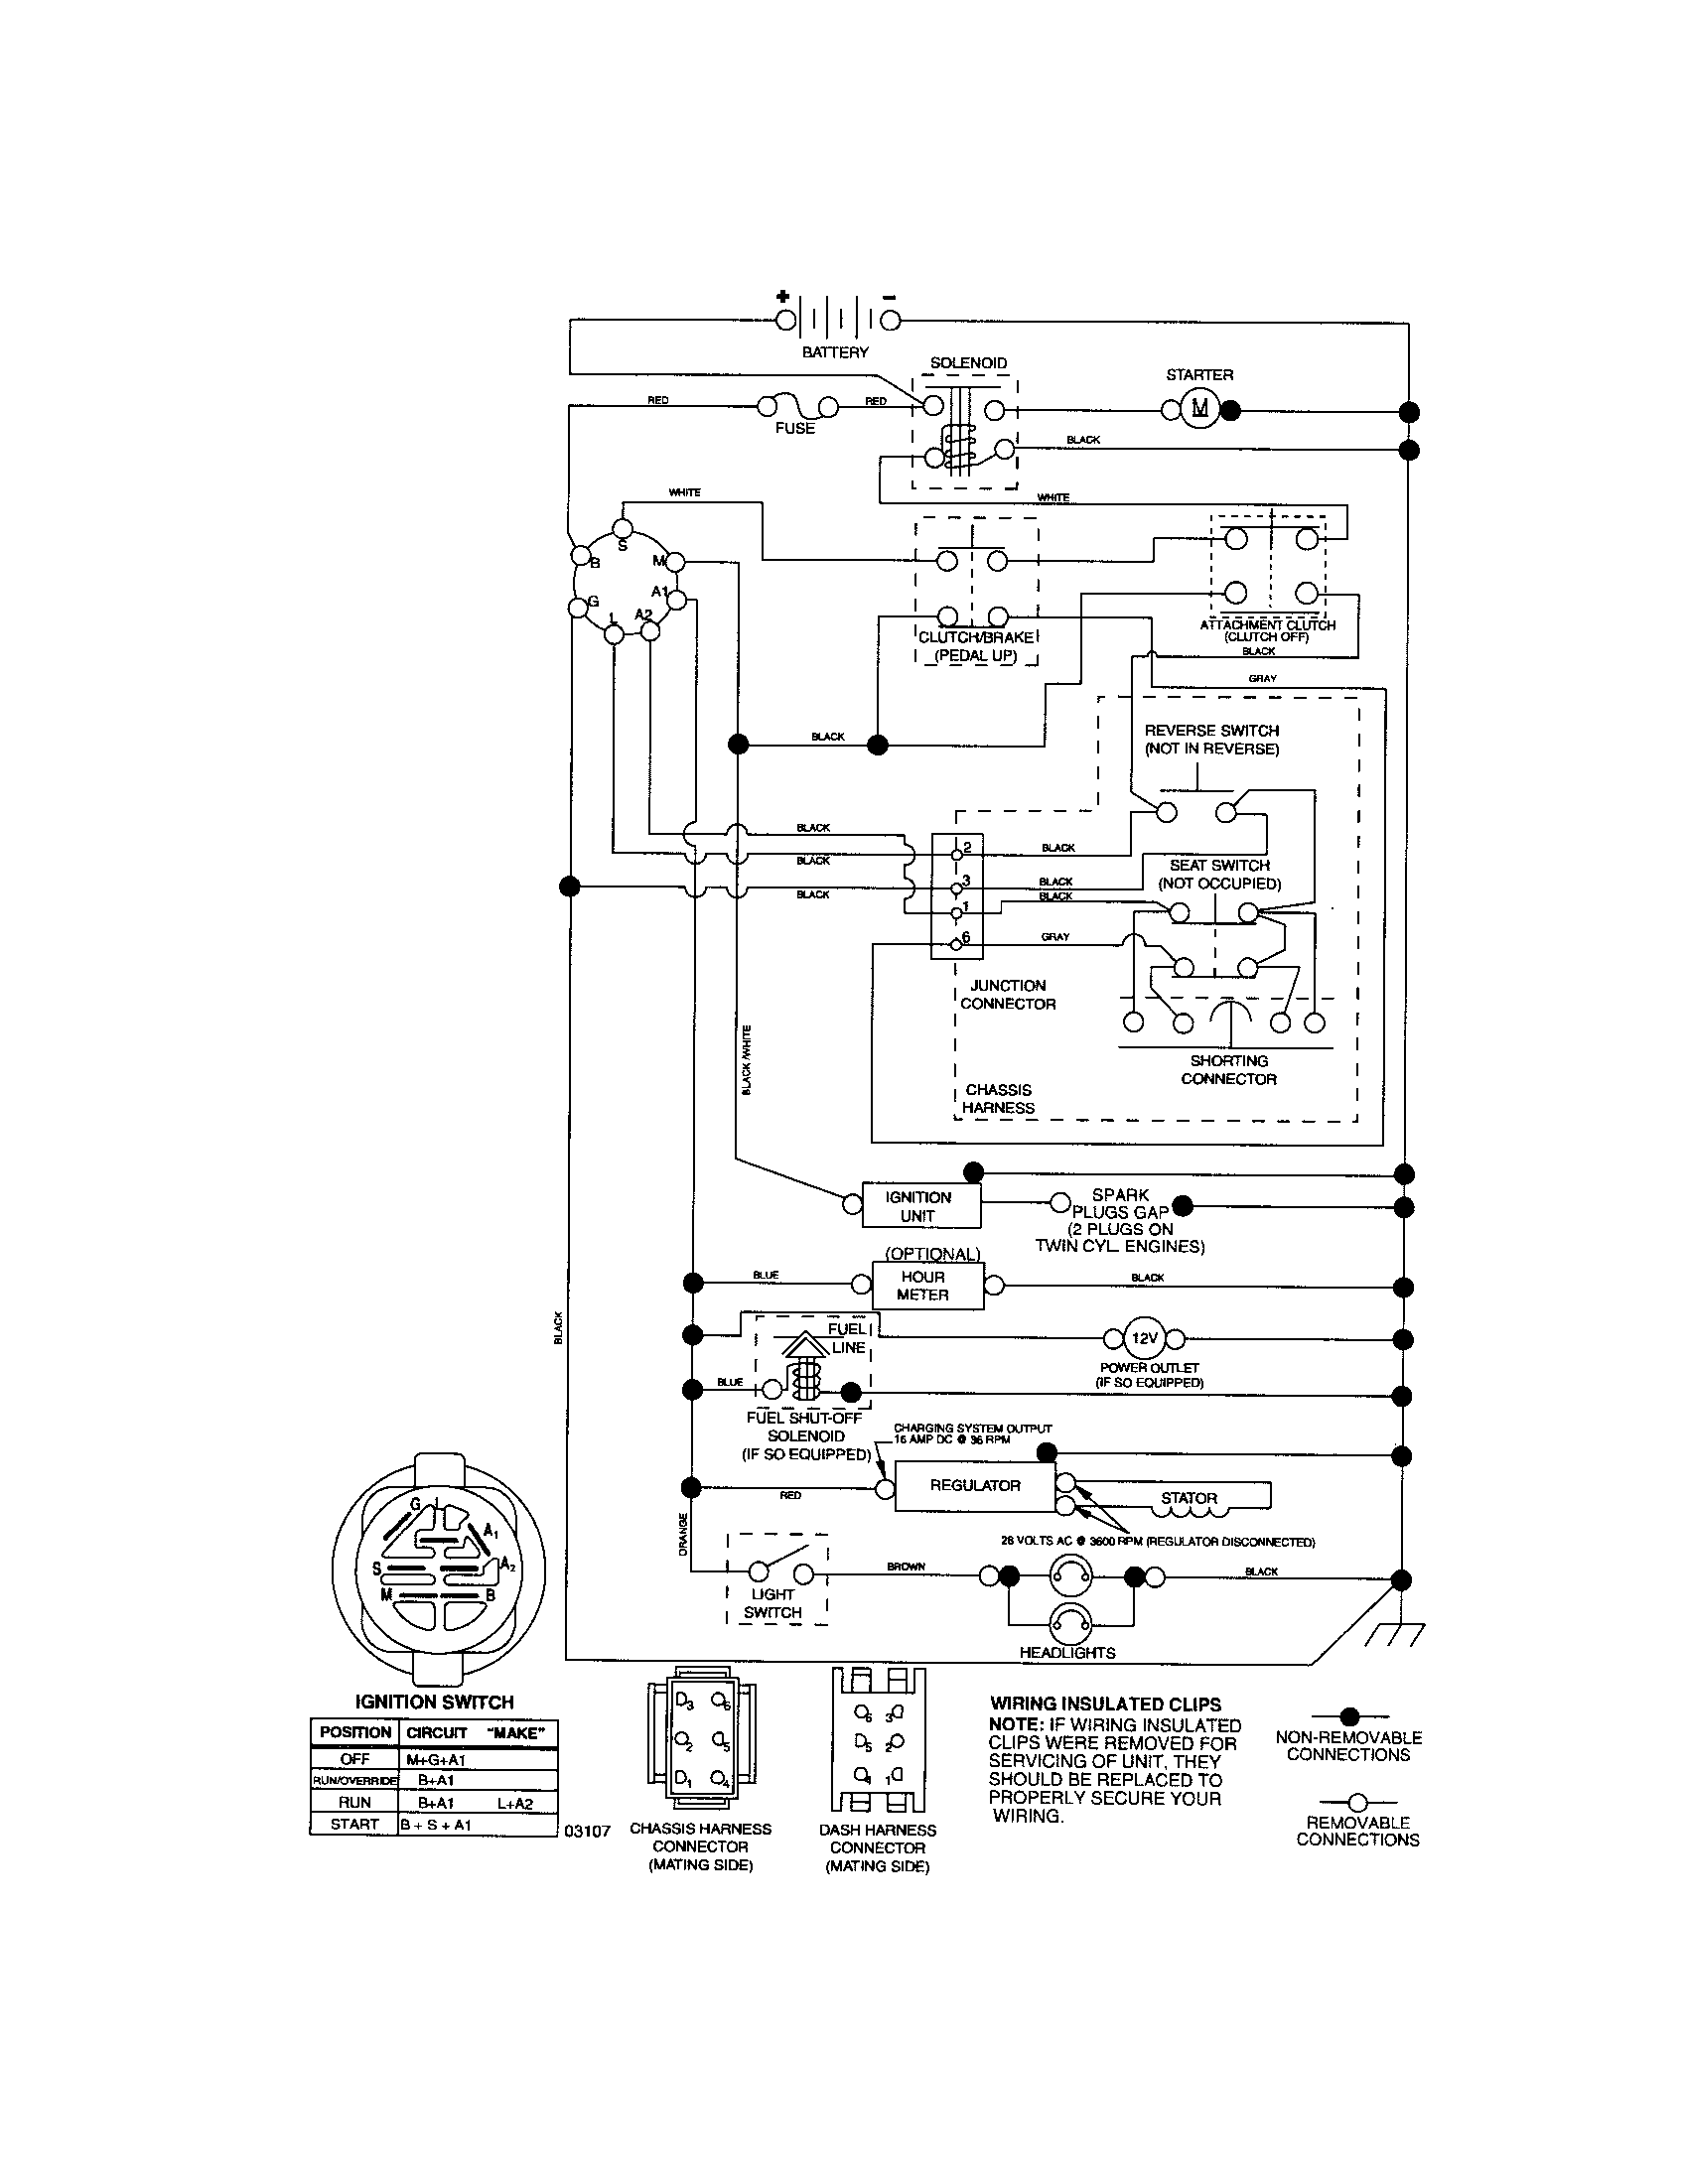 6af5f1447fd13c8443376822ddc1e105 craftsman riding mower electrical diagram wiring diagram lawn tractor ignition switch wiring diagram at gsmportal.co